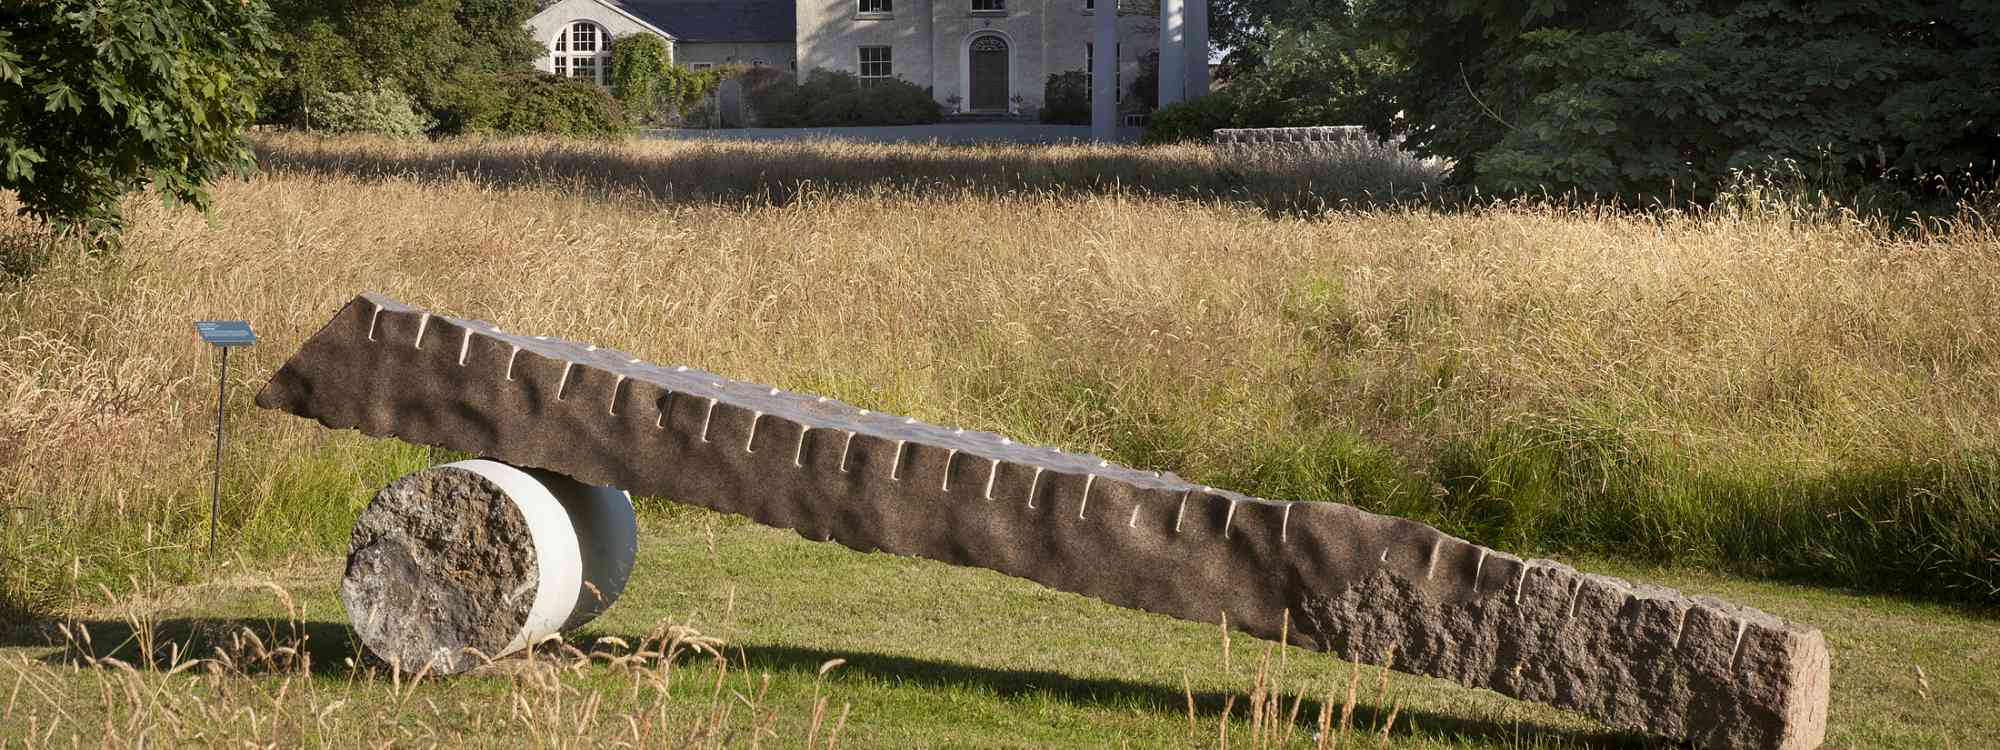 Sculptures and art in the gardens at Burtown